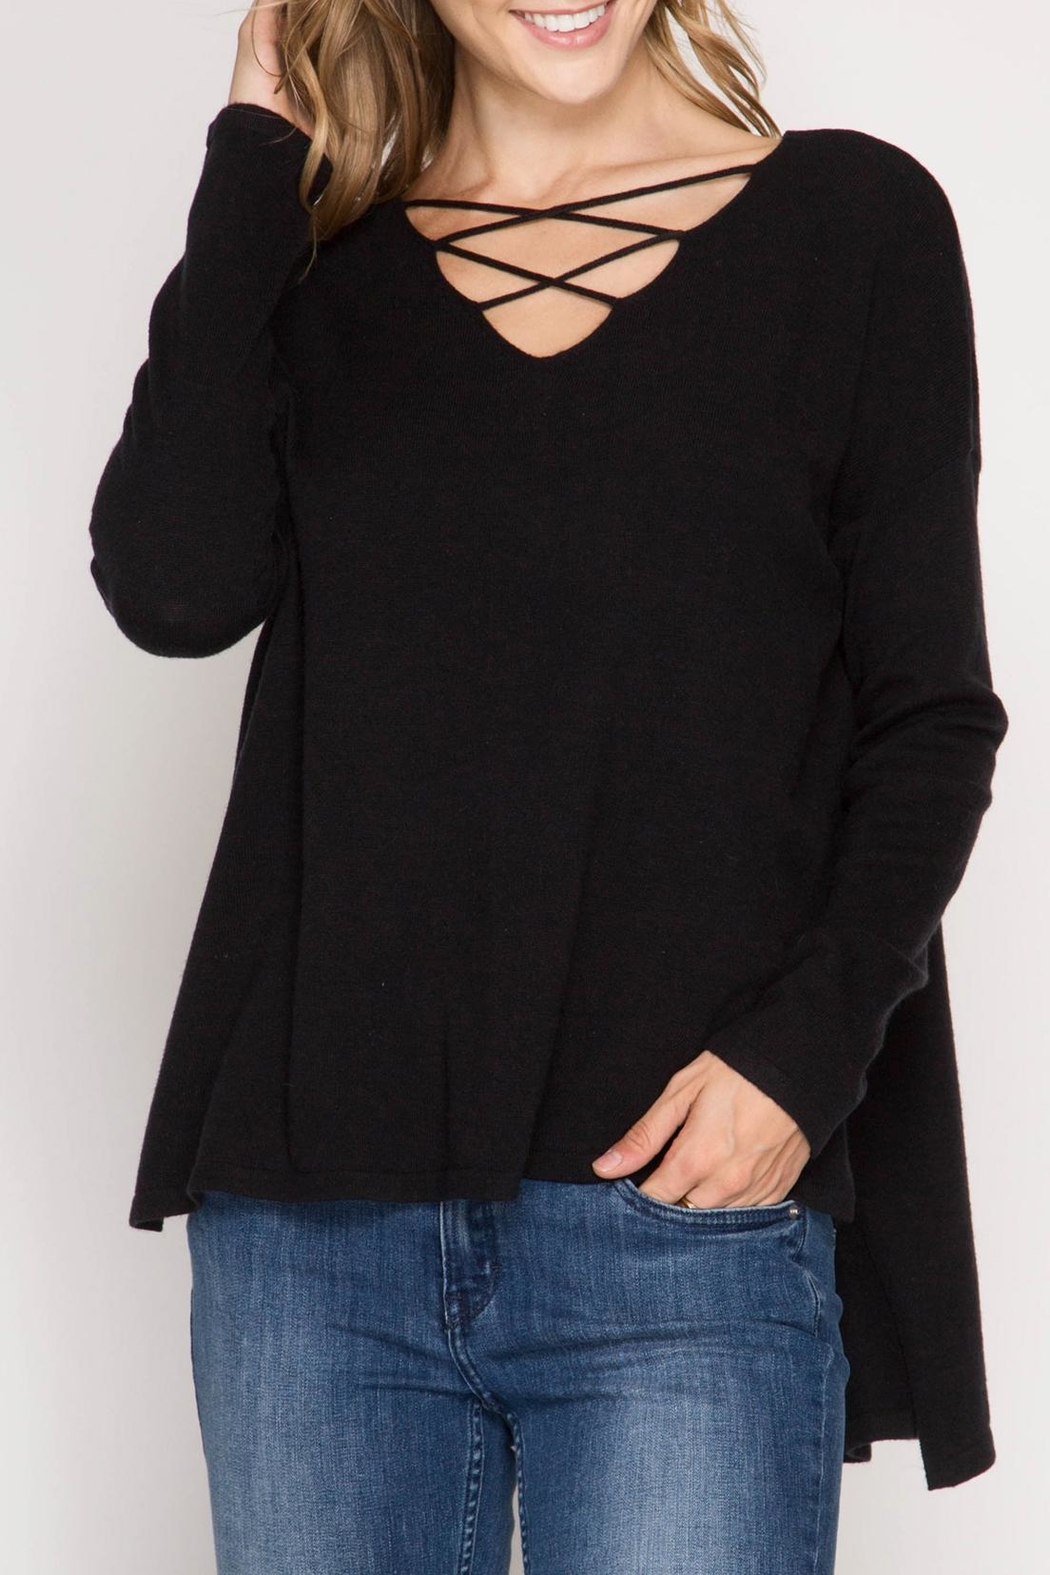 She + Sky Samantha Sweater - Front Cropped Image